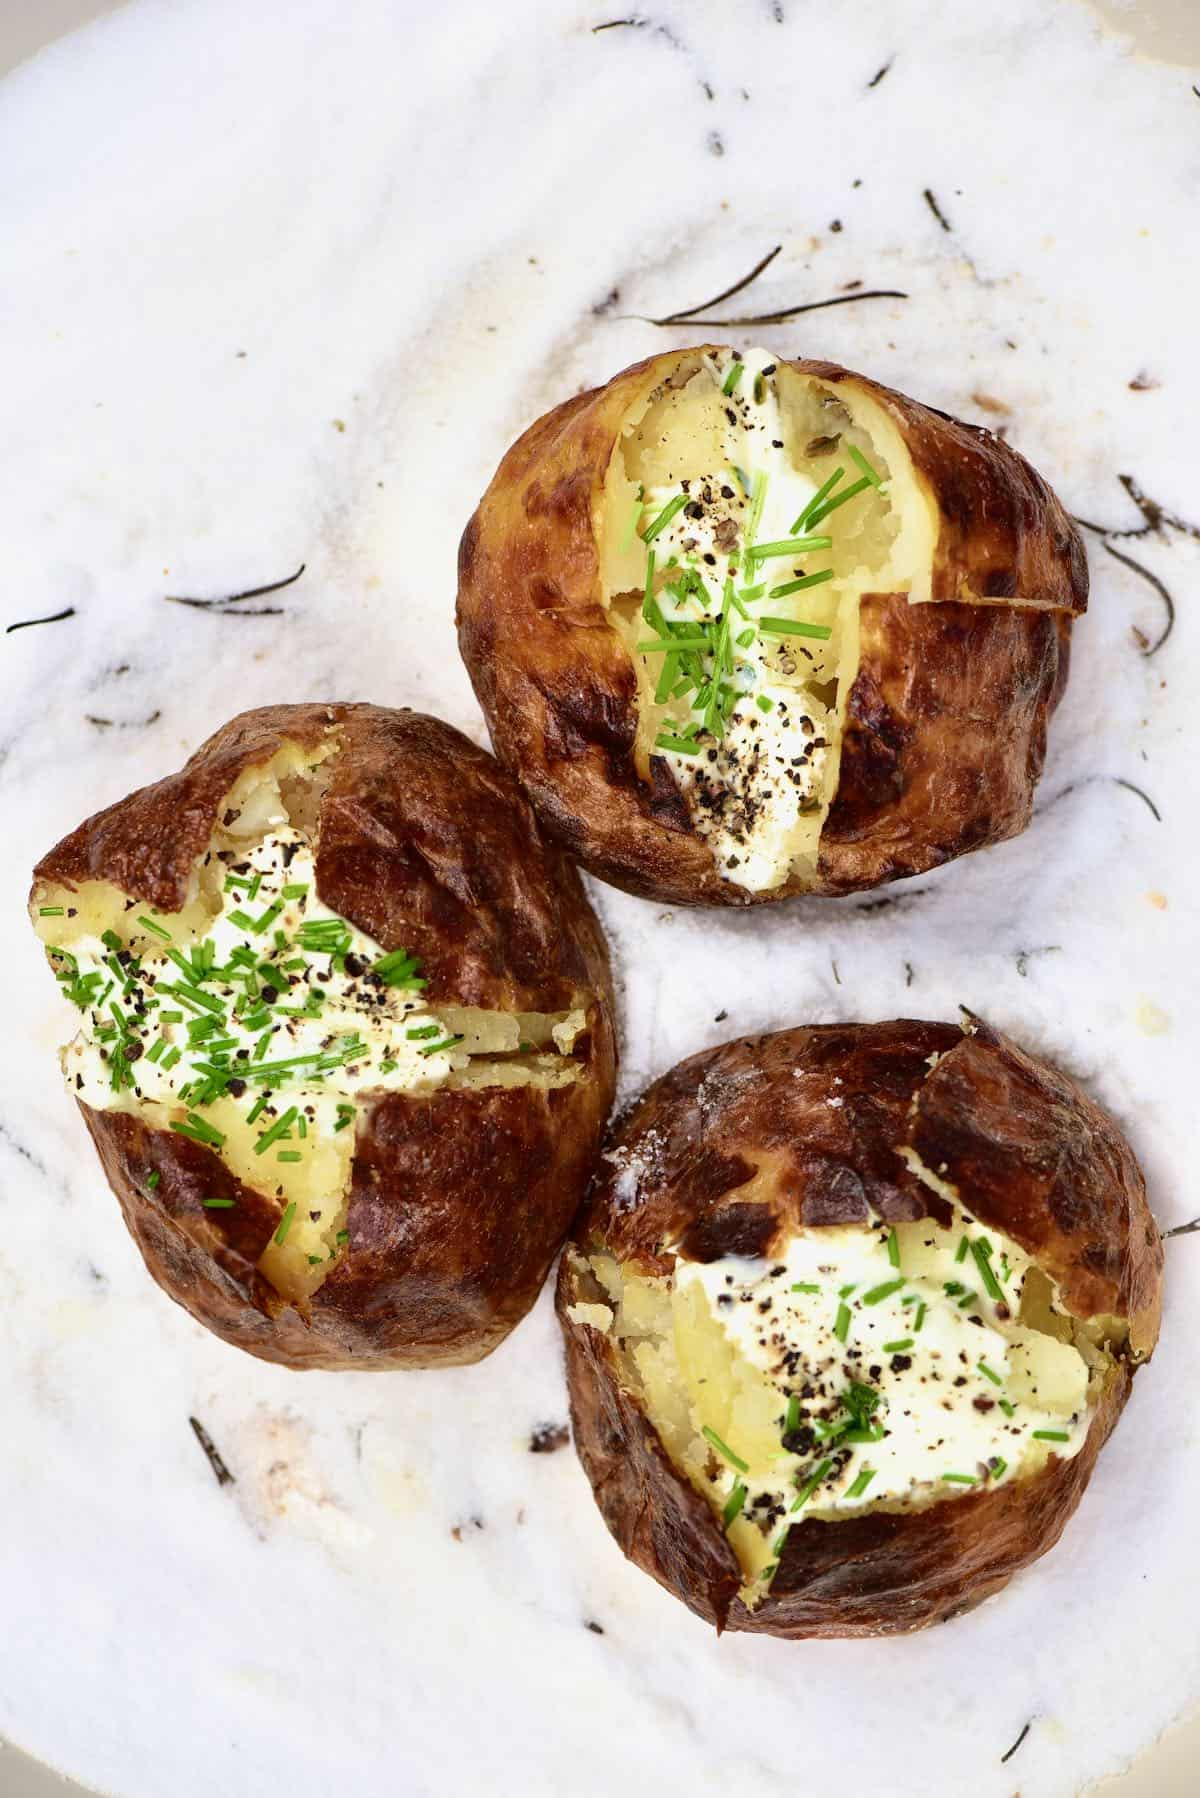 Three salt baked potatoes topped with cream and herbs